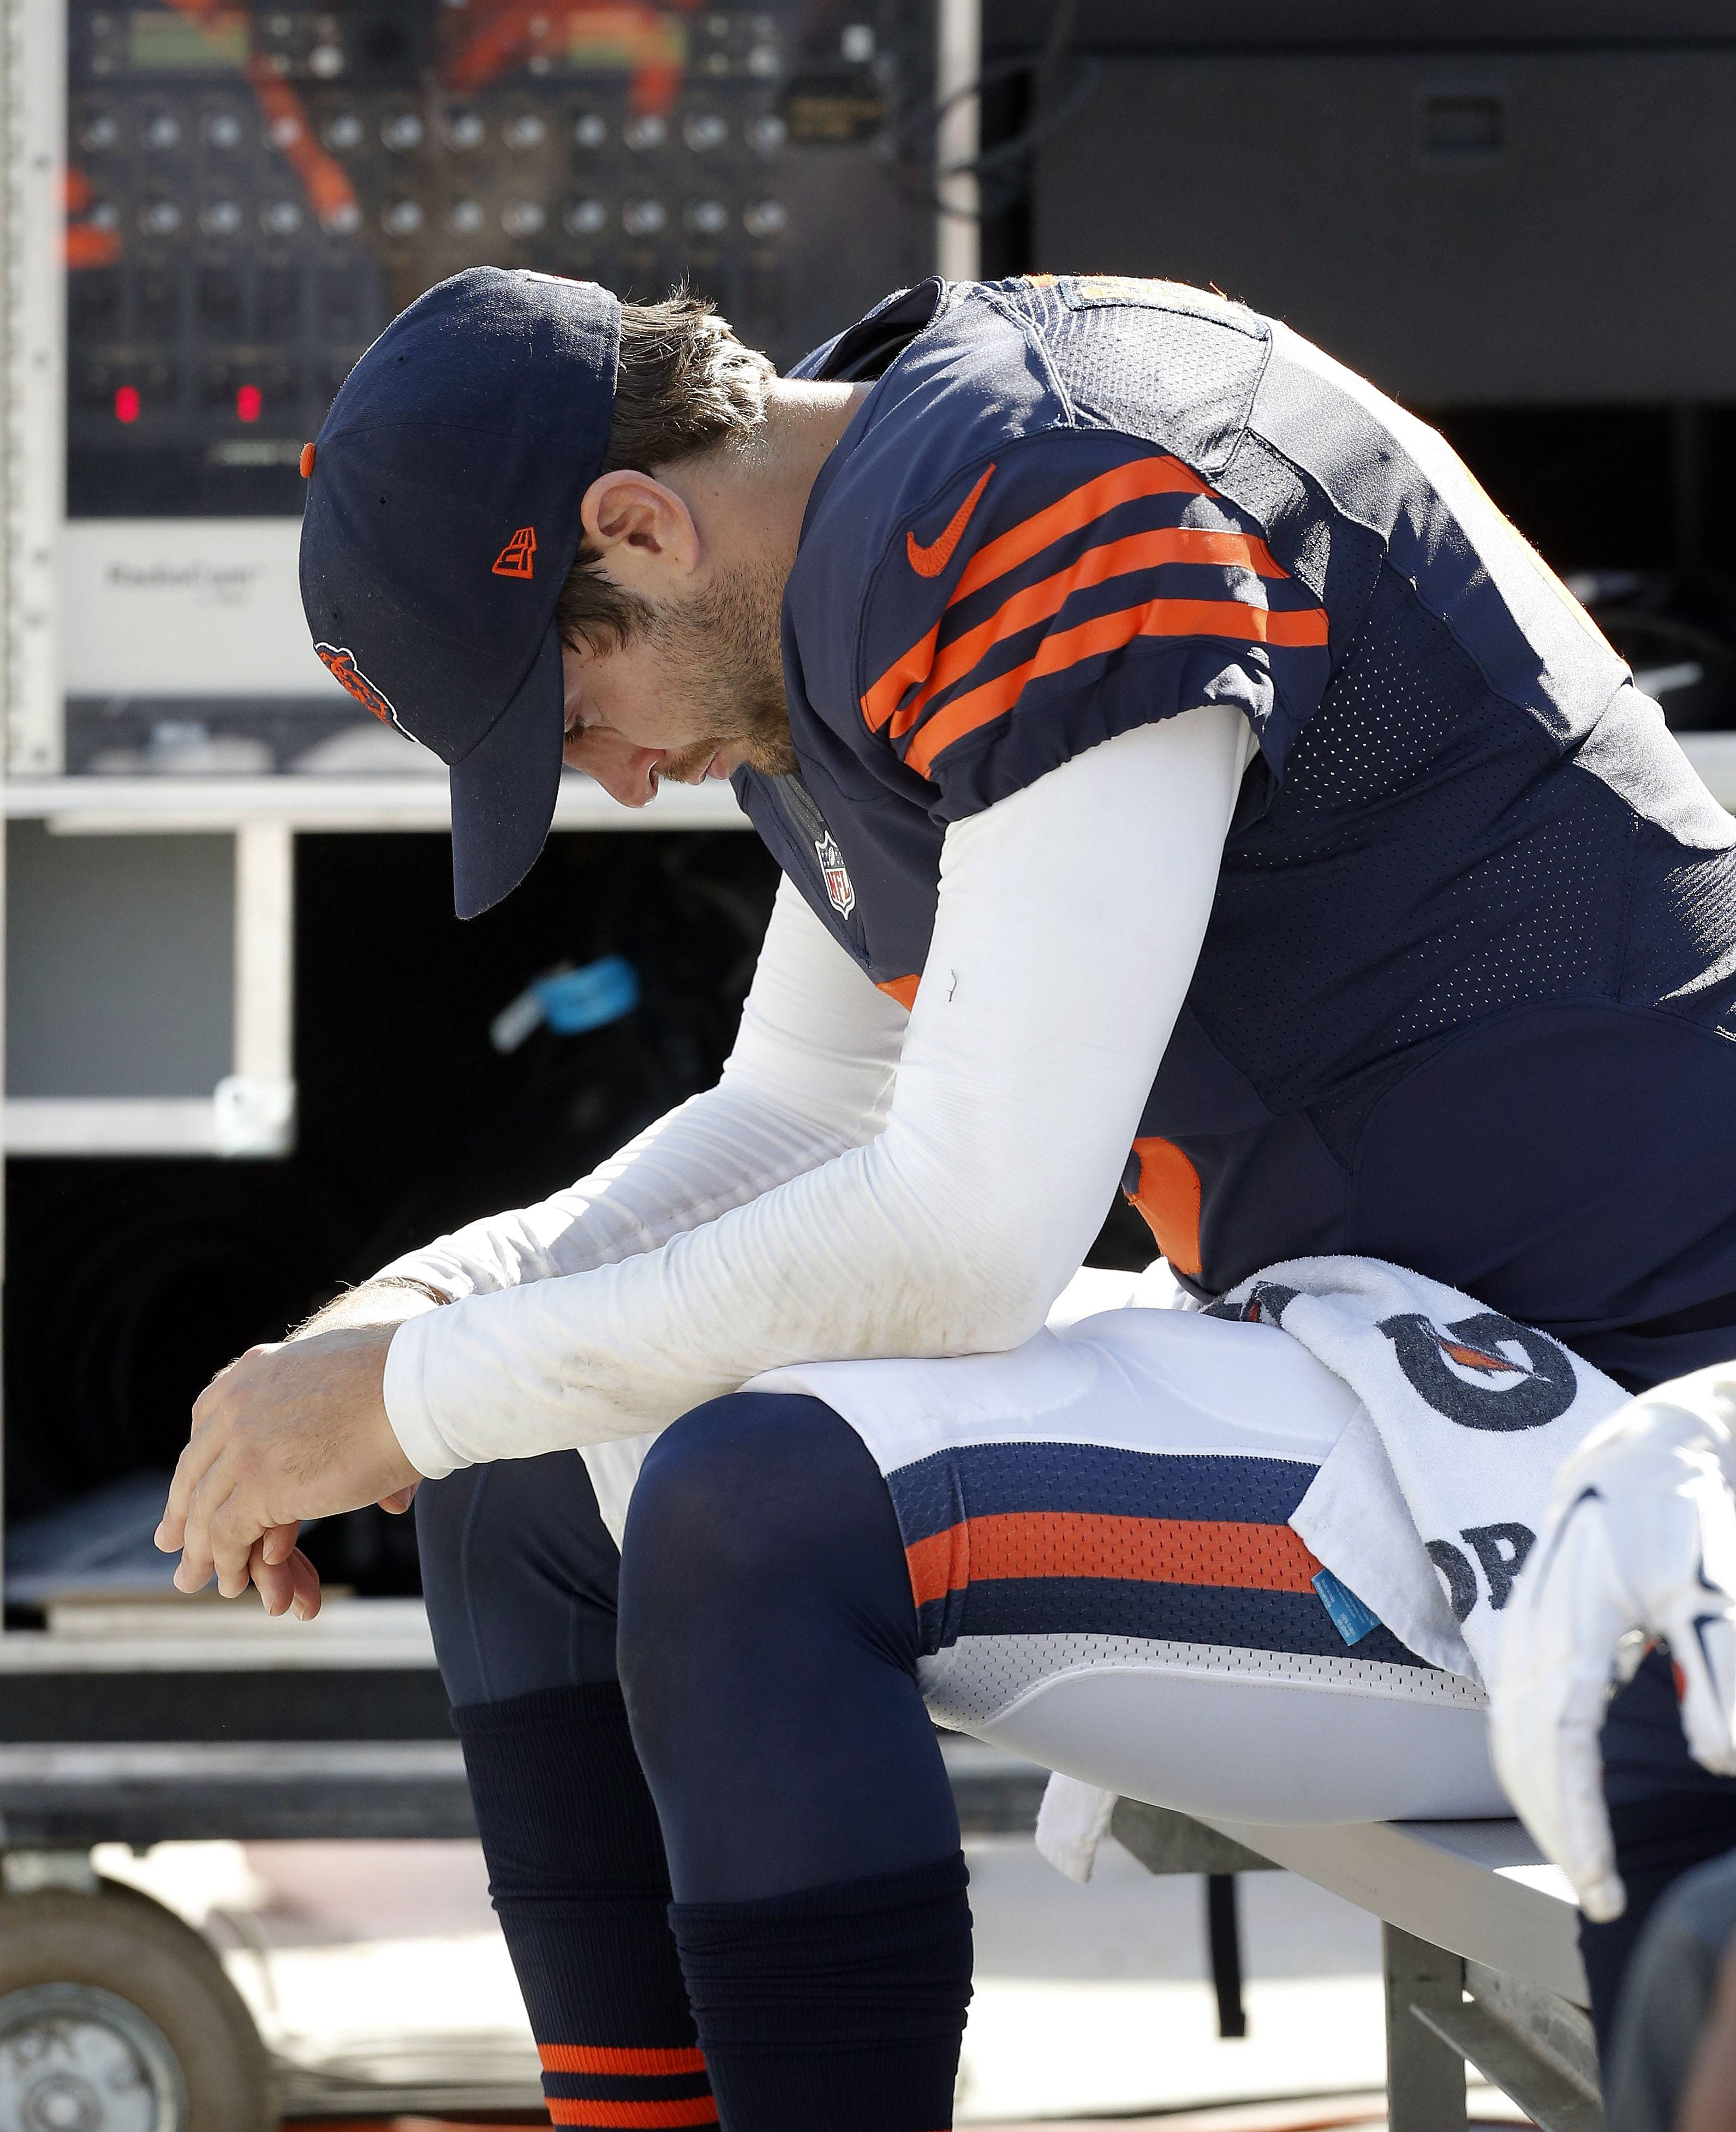 While Bears quarterback Jay Cutler tries to figure out what went wrong against the Packers, the Bears find themselves tied in the NFC North with Green Bay and Minnesota.